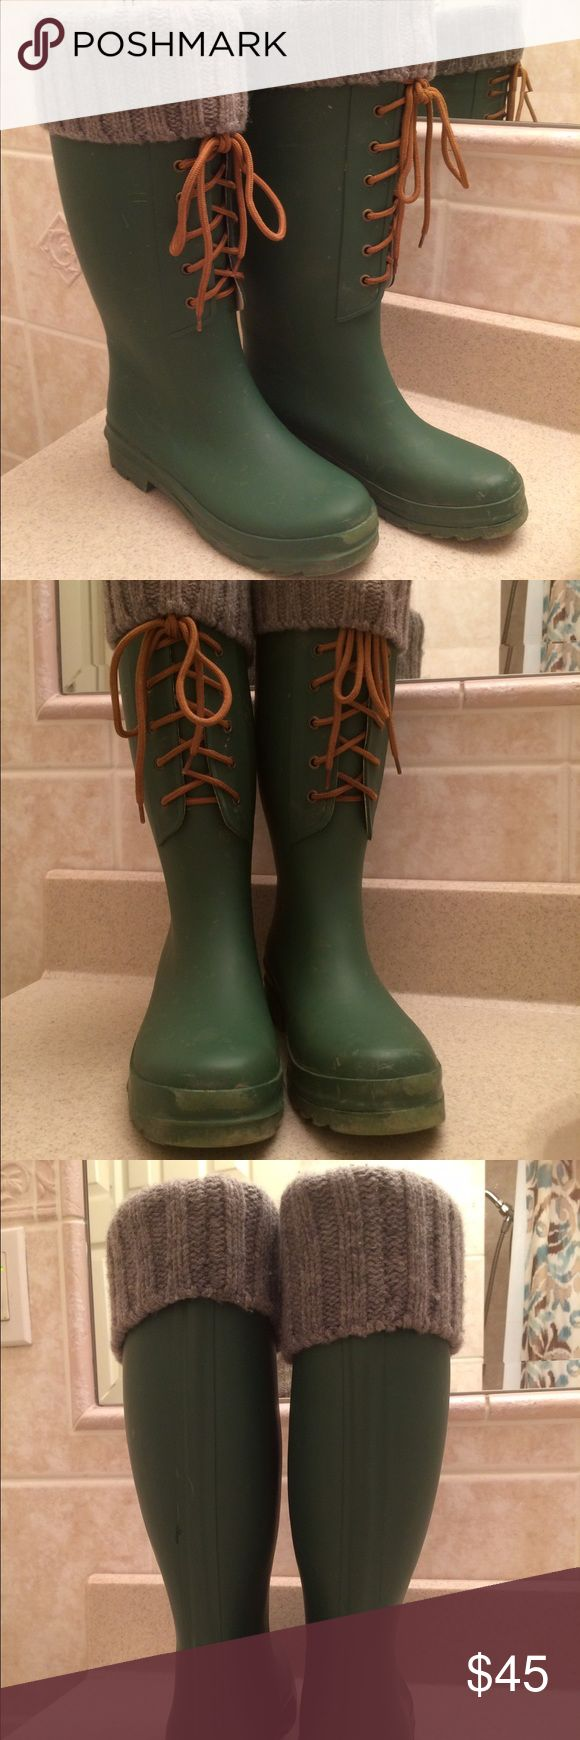 J.Crew Rain Boots Olive Colored J Crew Lace Front Waterproof  Rain Boots. Sock Lined at the Top of the Boots (not detachable) Overall good condition J Crew Shoes Winter & Rain Boots